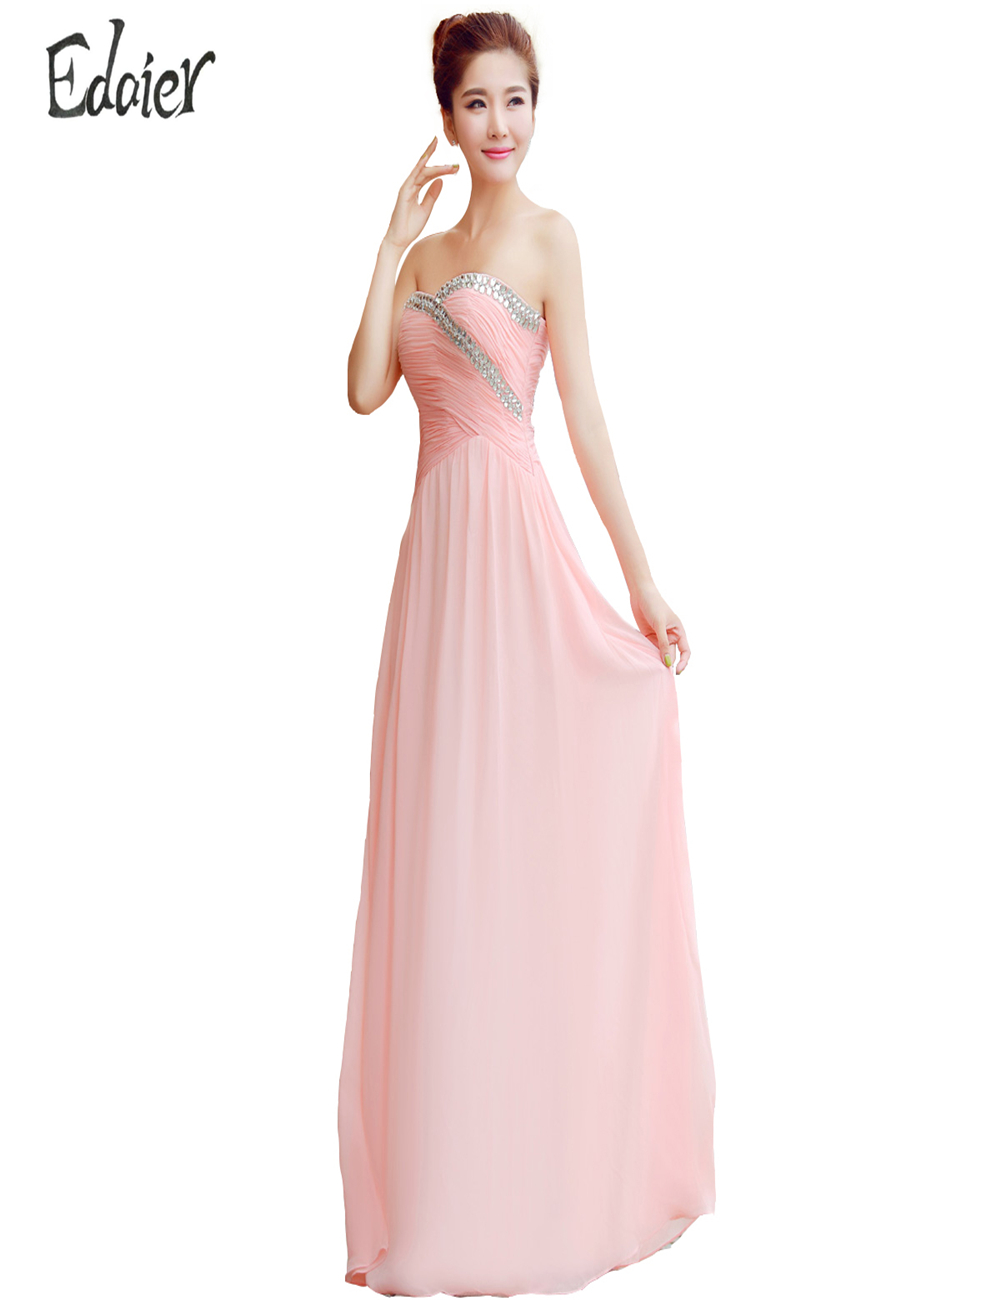 Popular light pink bridesmaid long dress buy cheap light pink 2017 bridesmaid dresses wedding party dress edaier strapless elegant light pink ruffled chiffon beaded long bridesmaid ombrellifo Image collections